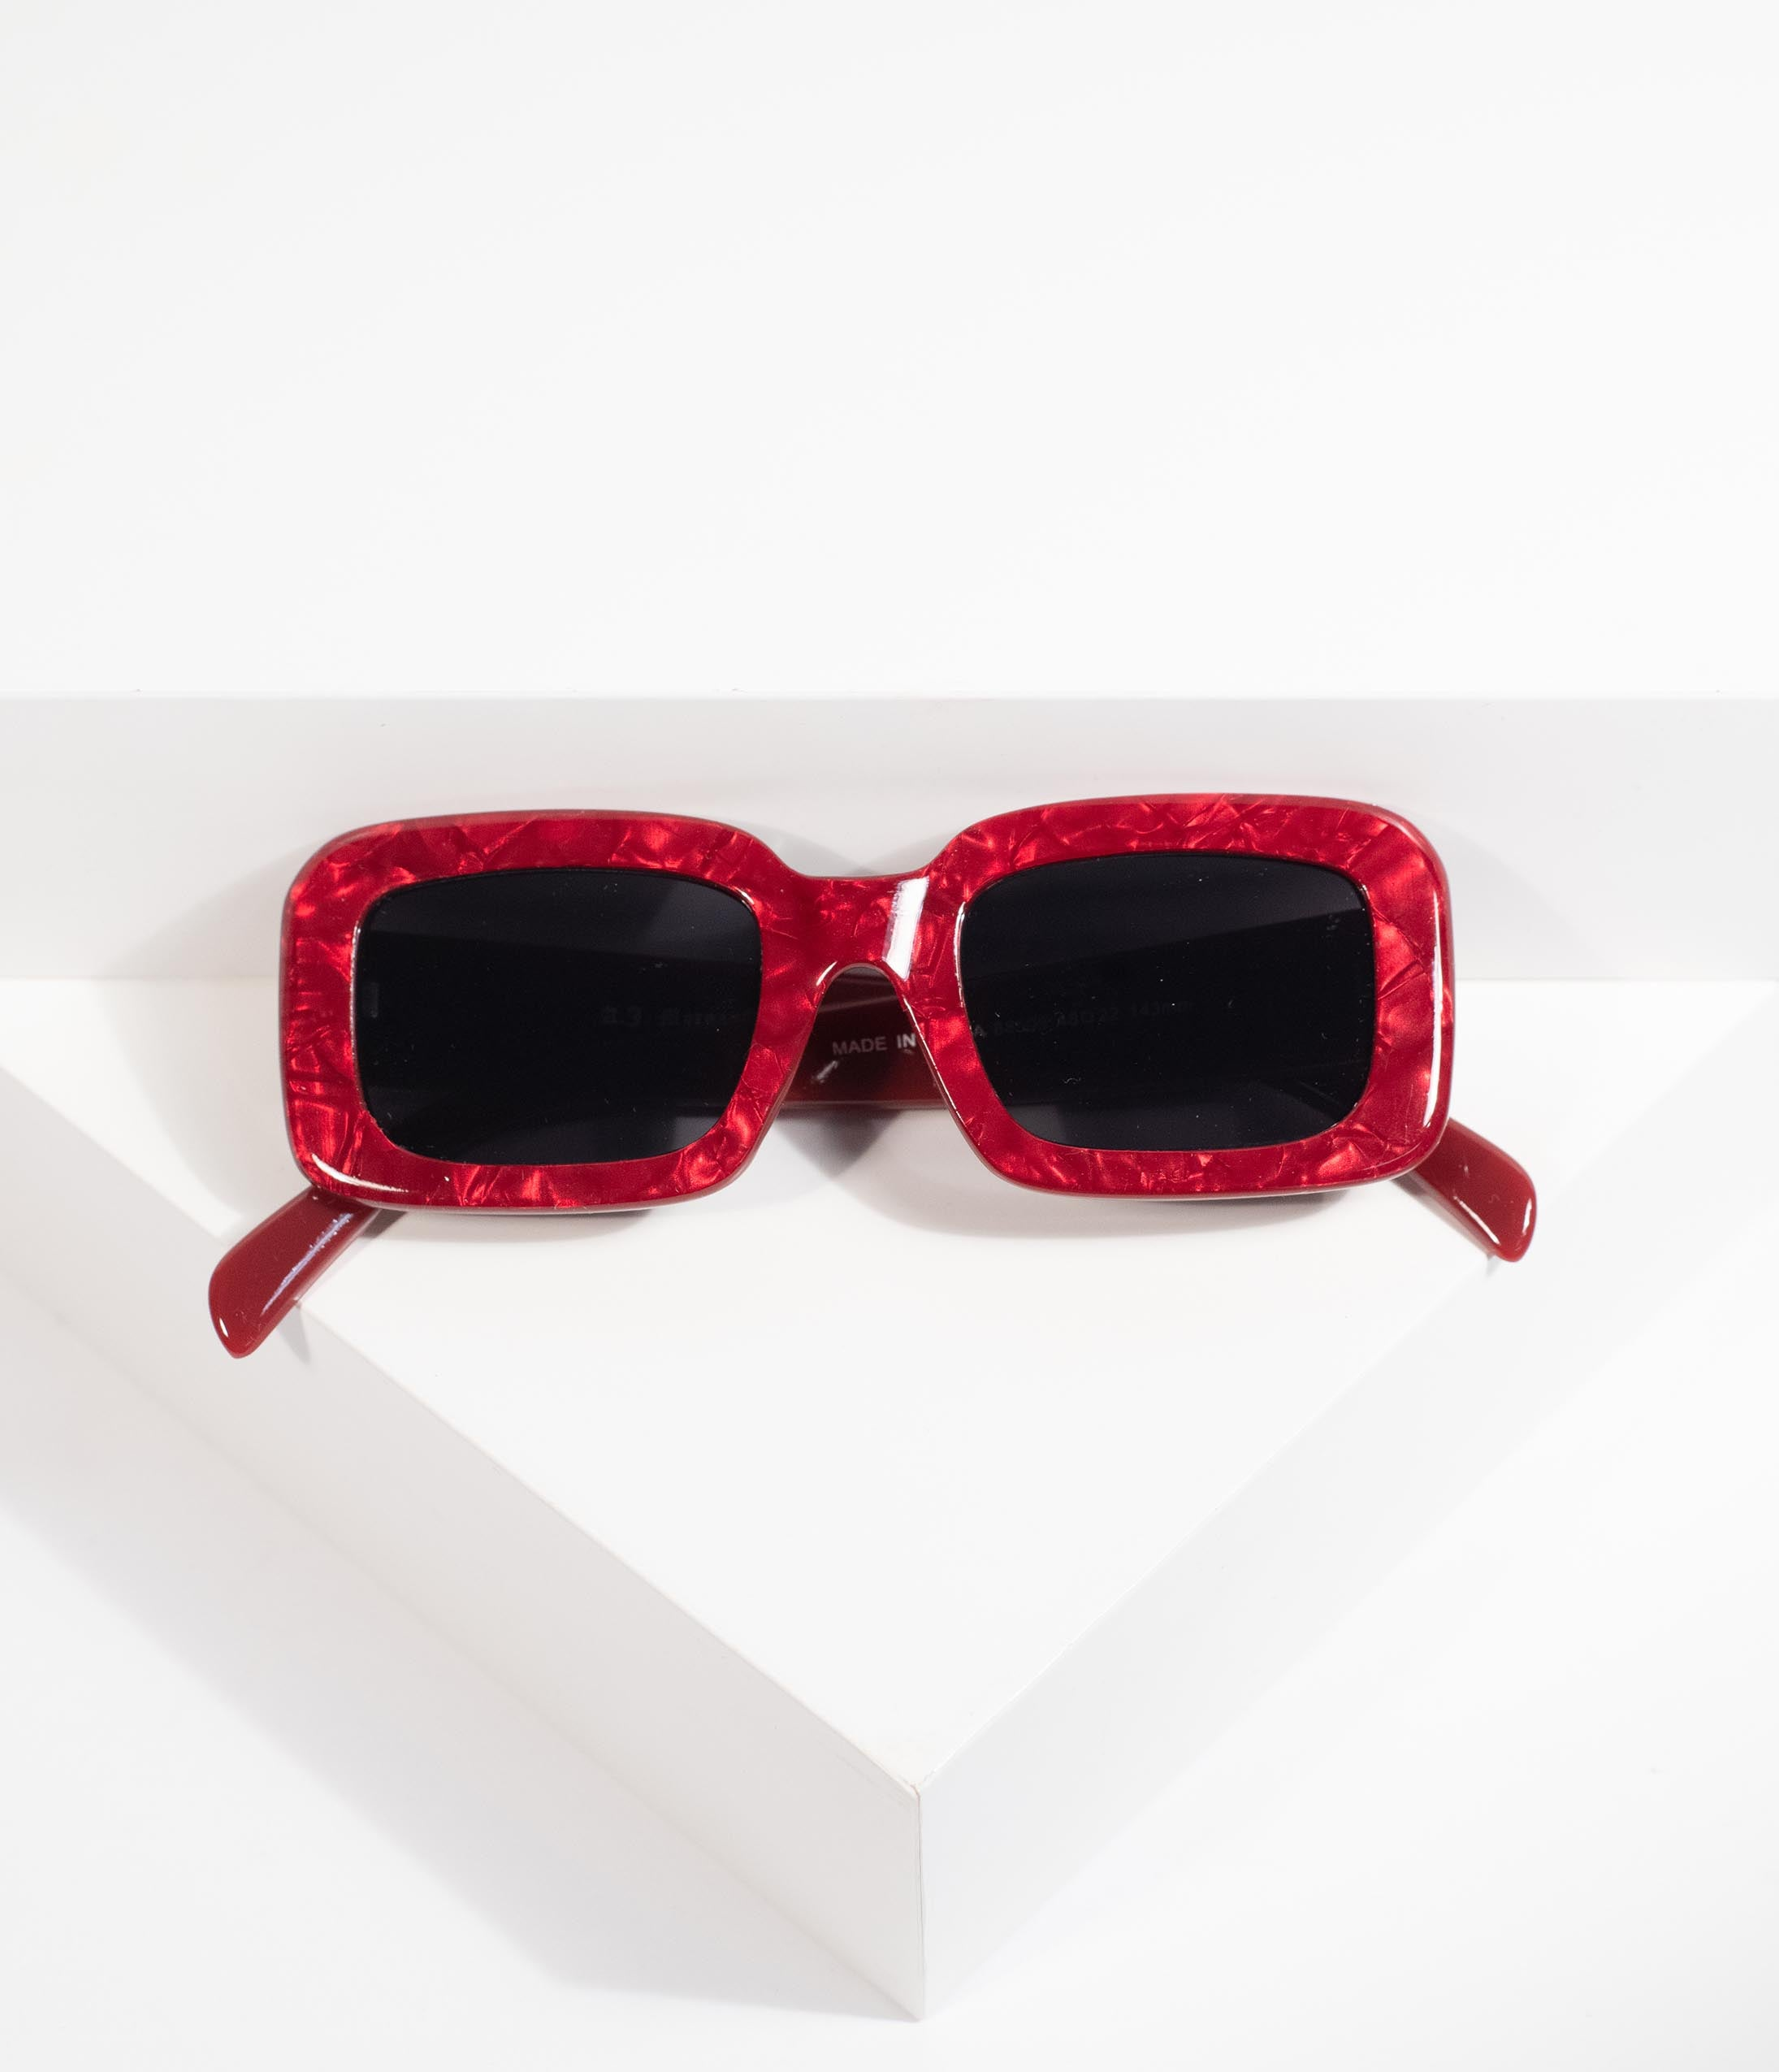 1960s Sunglasses | 70s Sunglasses, 70s Glasses Retro Style Red Marble Museum Square Sunglasses $22.00 AT vintagedancer.com